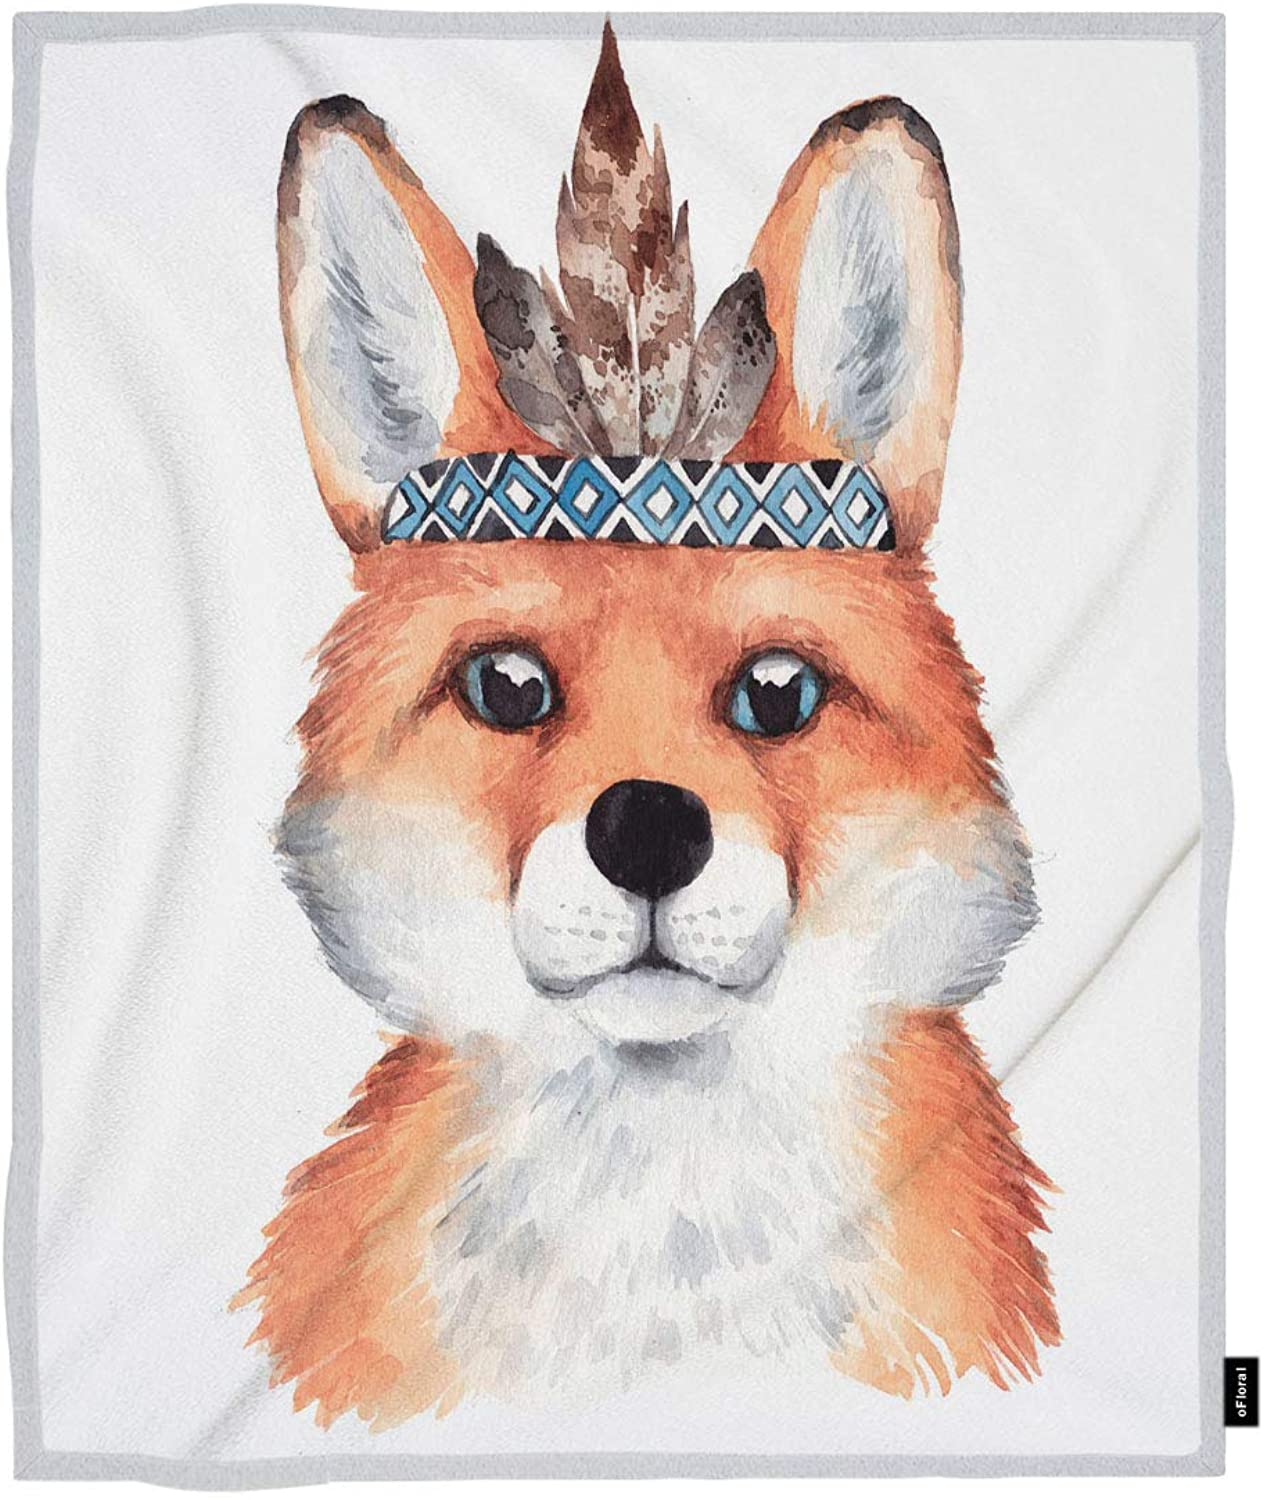 OFloral Fox Throw Blanket Forest Baby Kid Animal Boho Fox Feather Wreath Decorative Soft Warm Cozy Blankets Home Decor for Bed Chain Sofa Couch 60x80 Inch